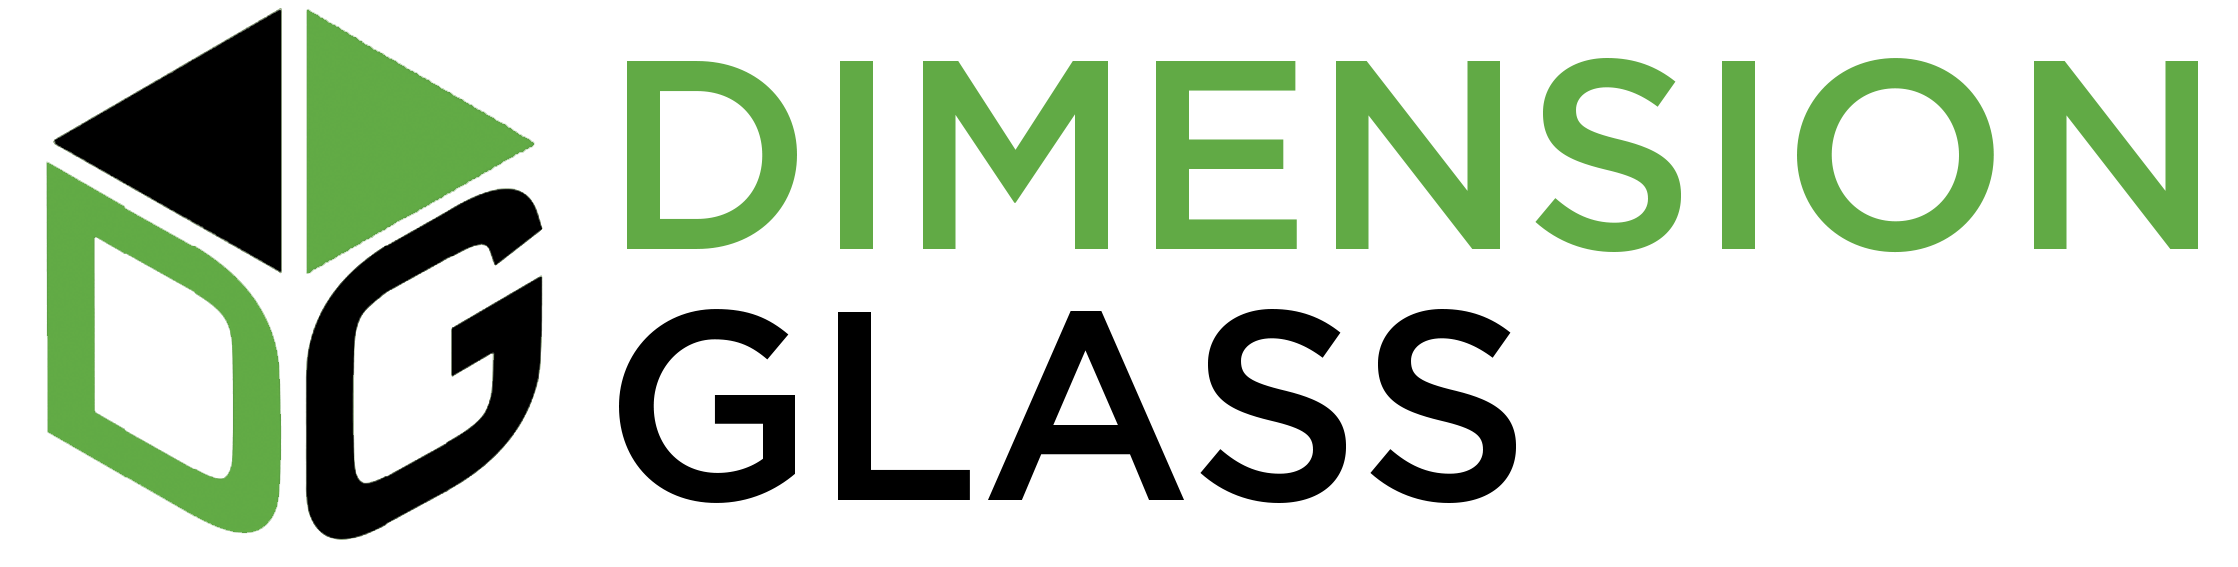 Dimension Glass